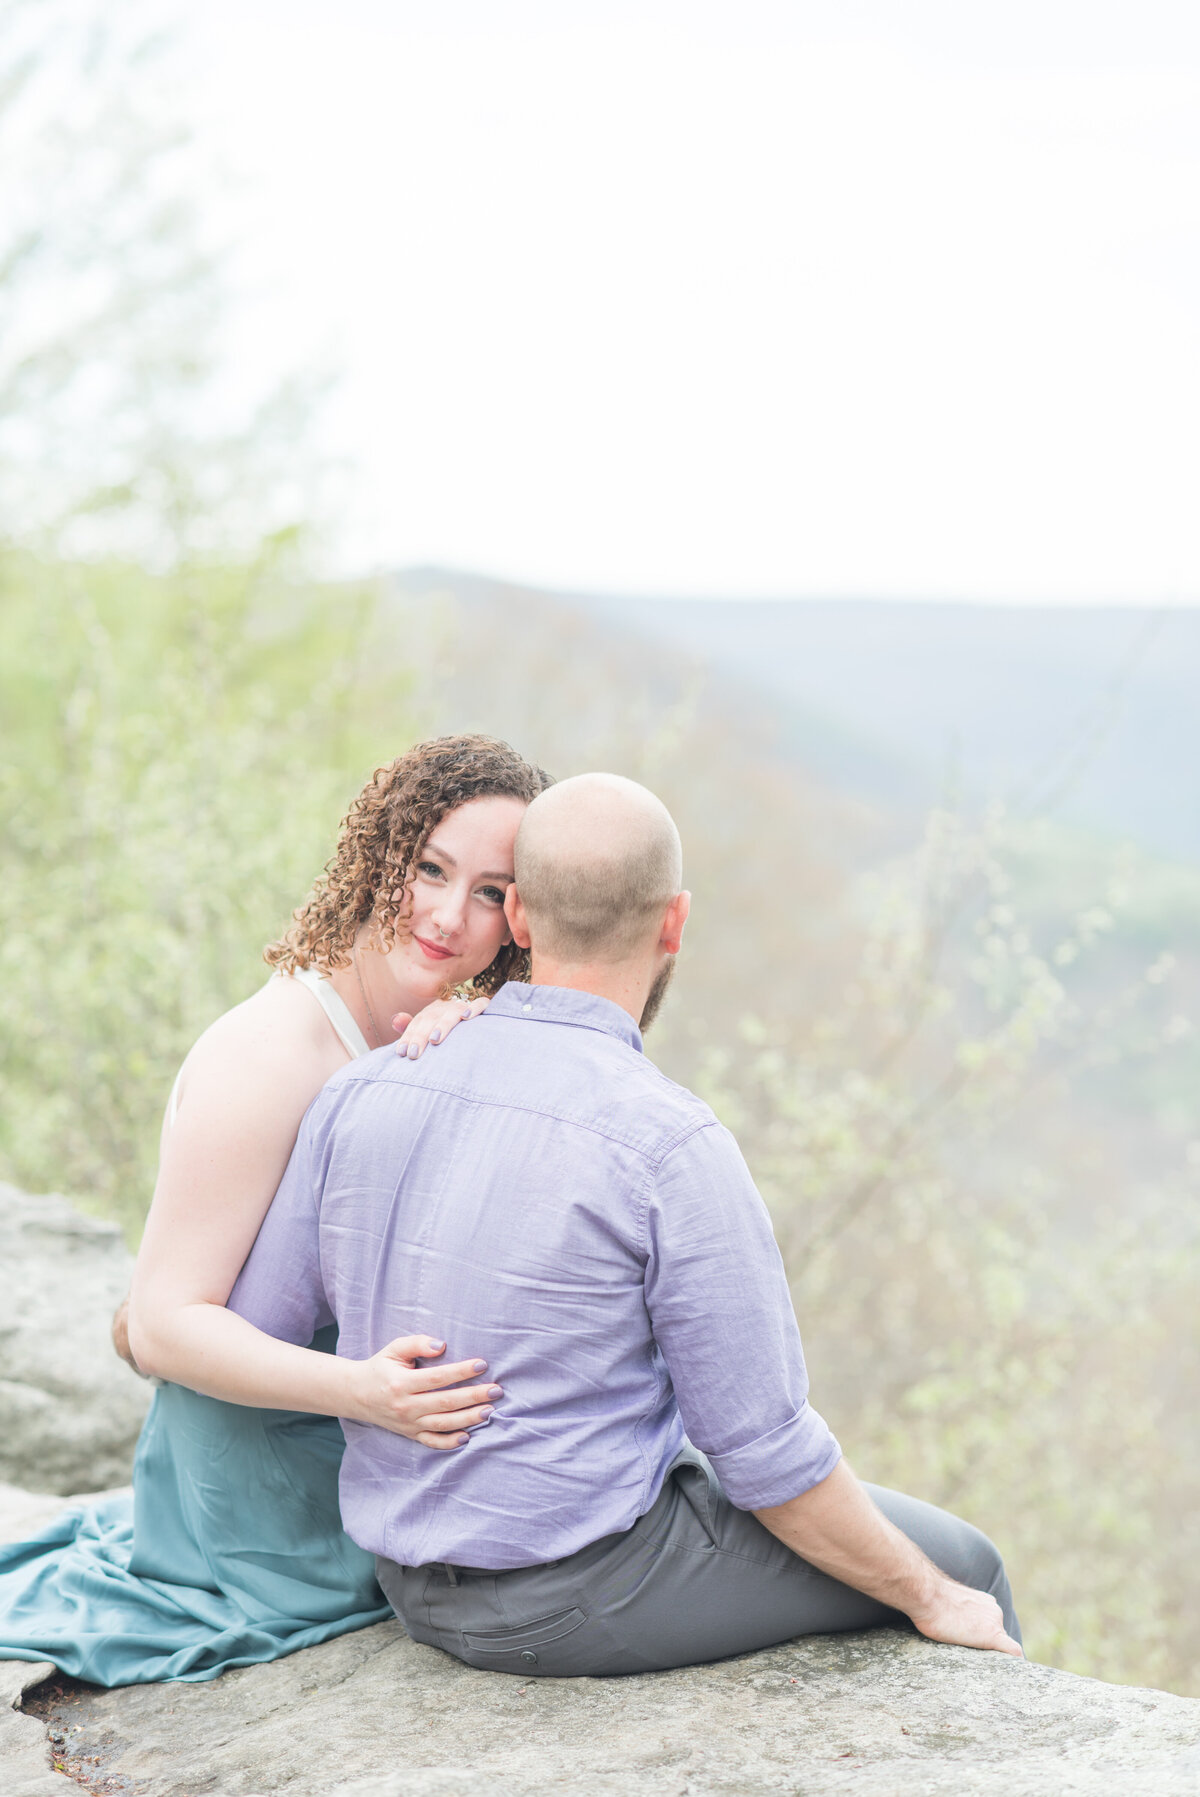 carmen-may-photography-ohiopyle-proposal-1236